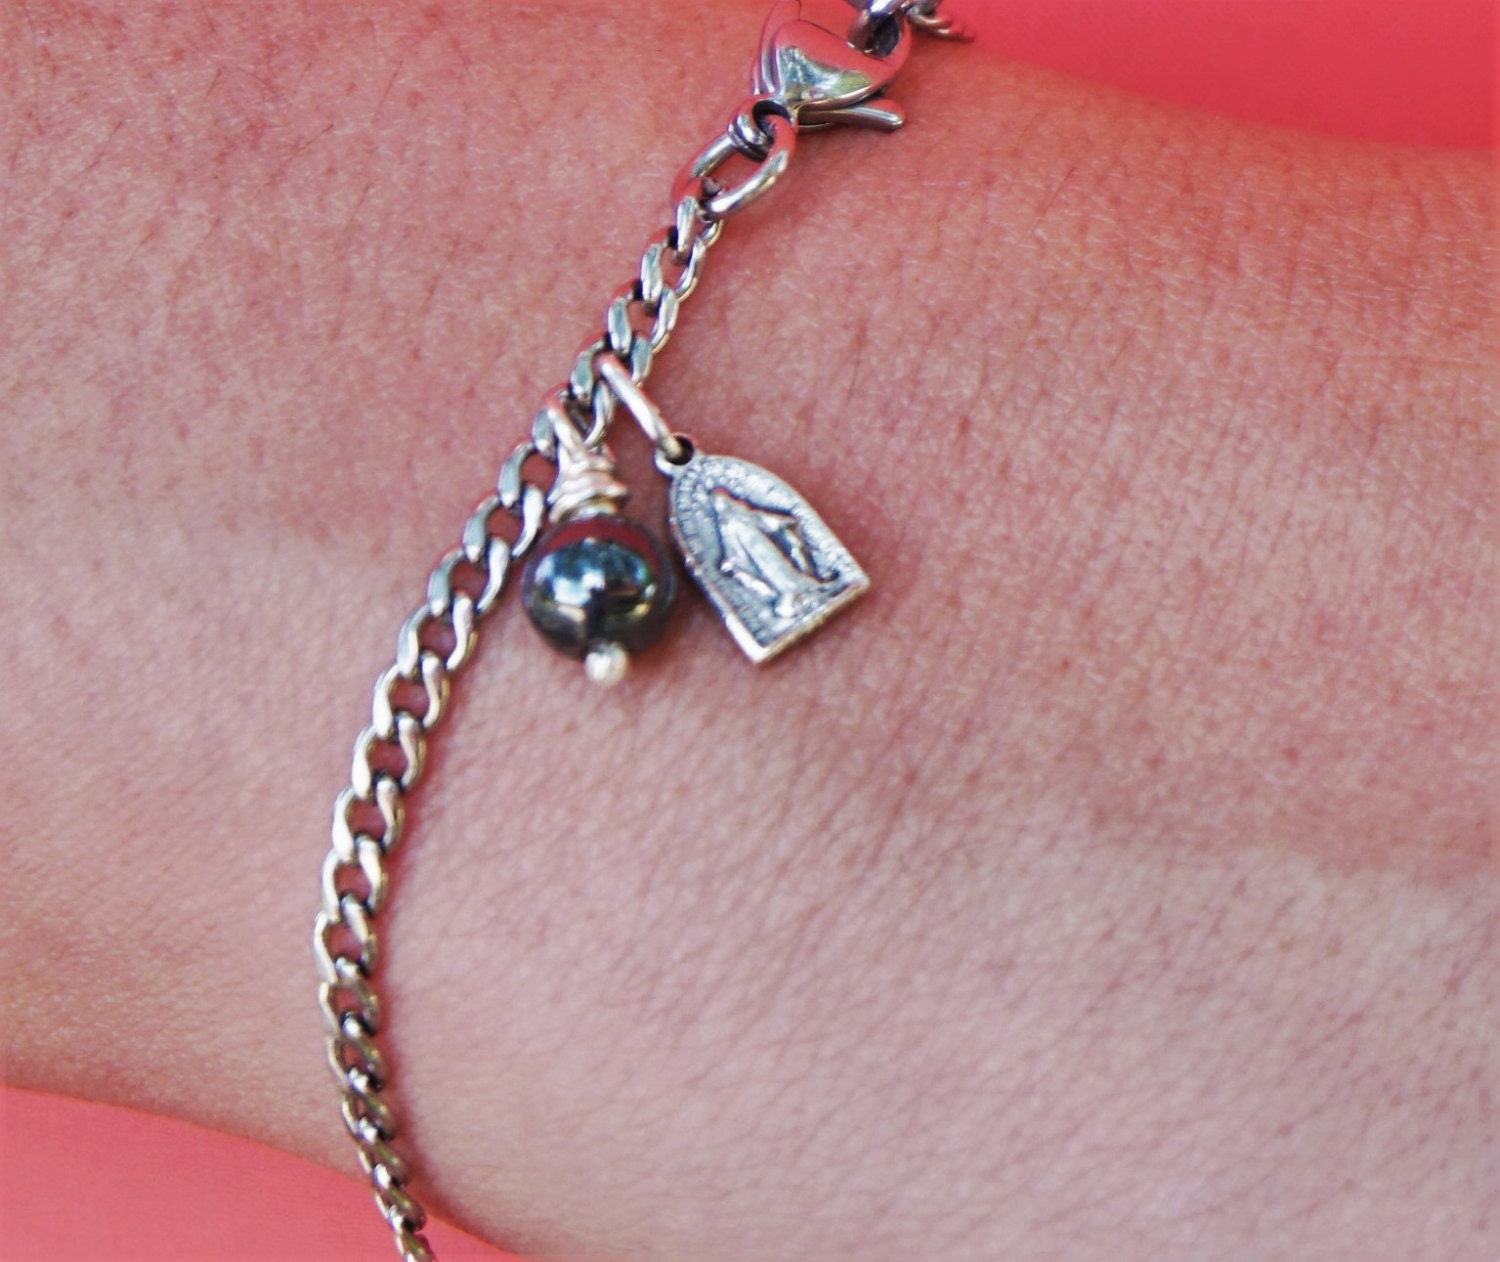 Total Consecration Bracelet Delicate Stainless Steel Chain   Etsy